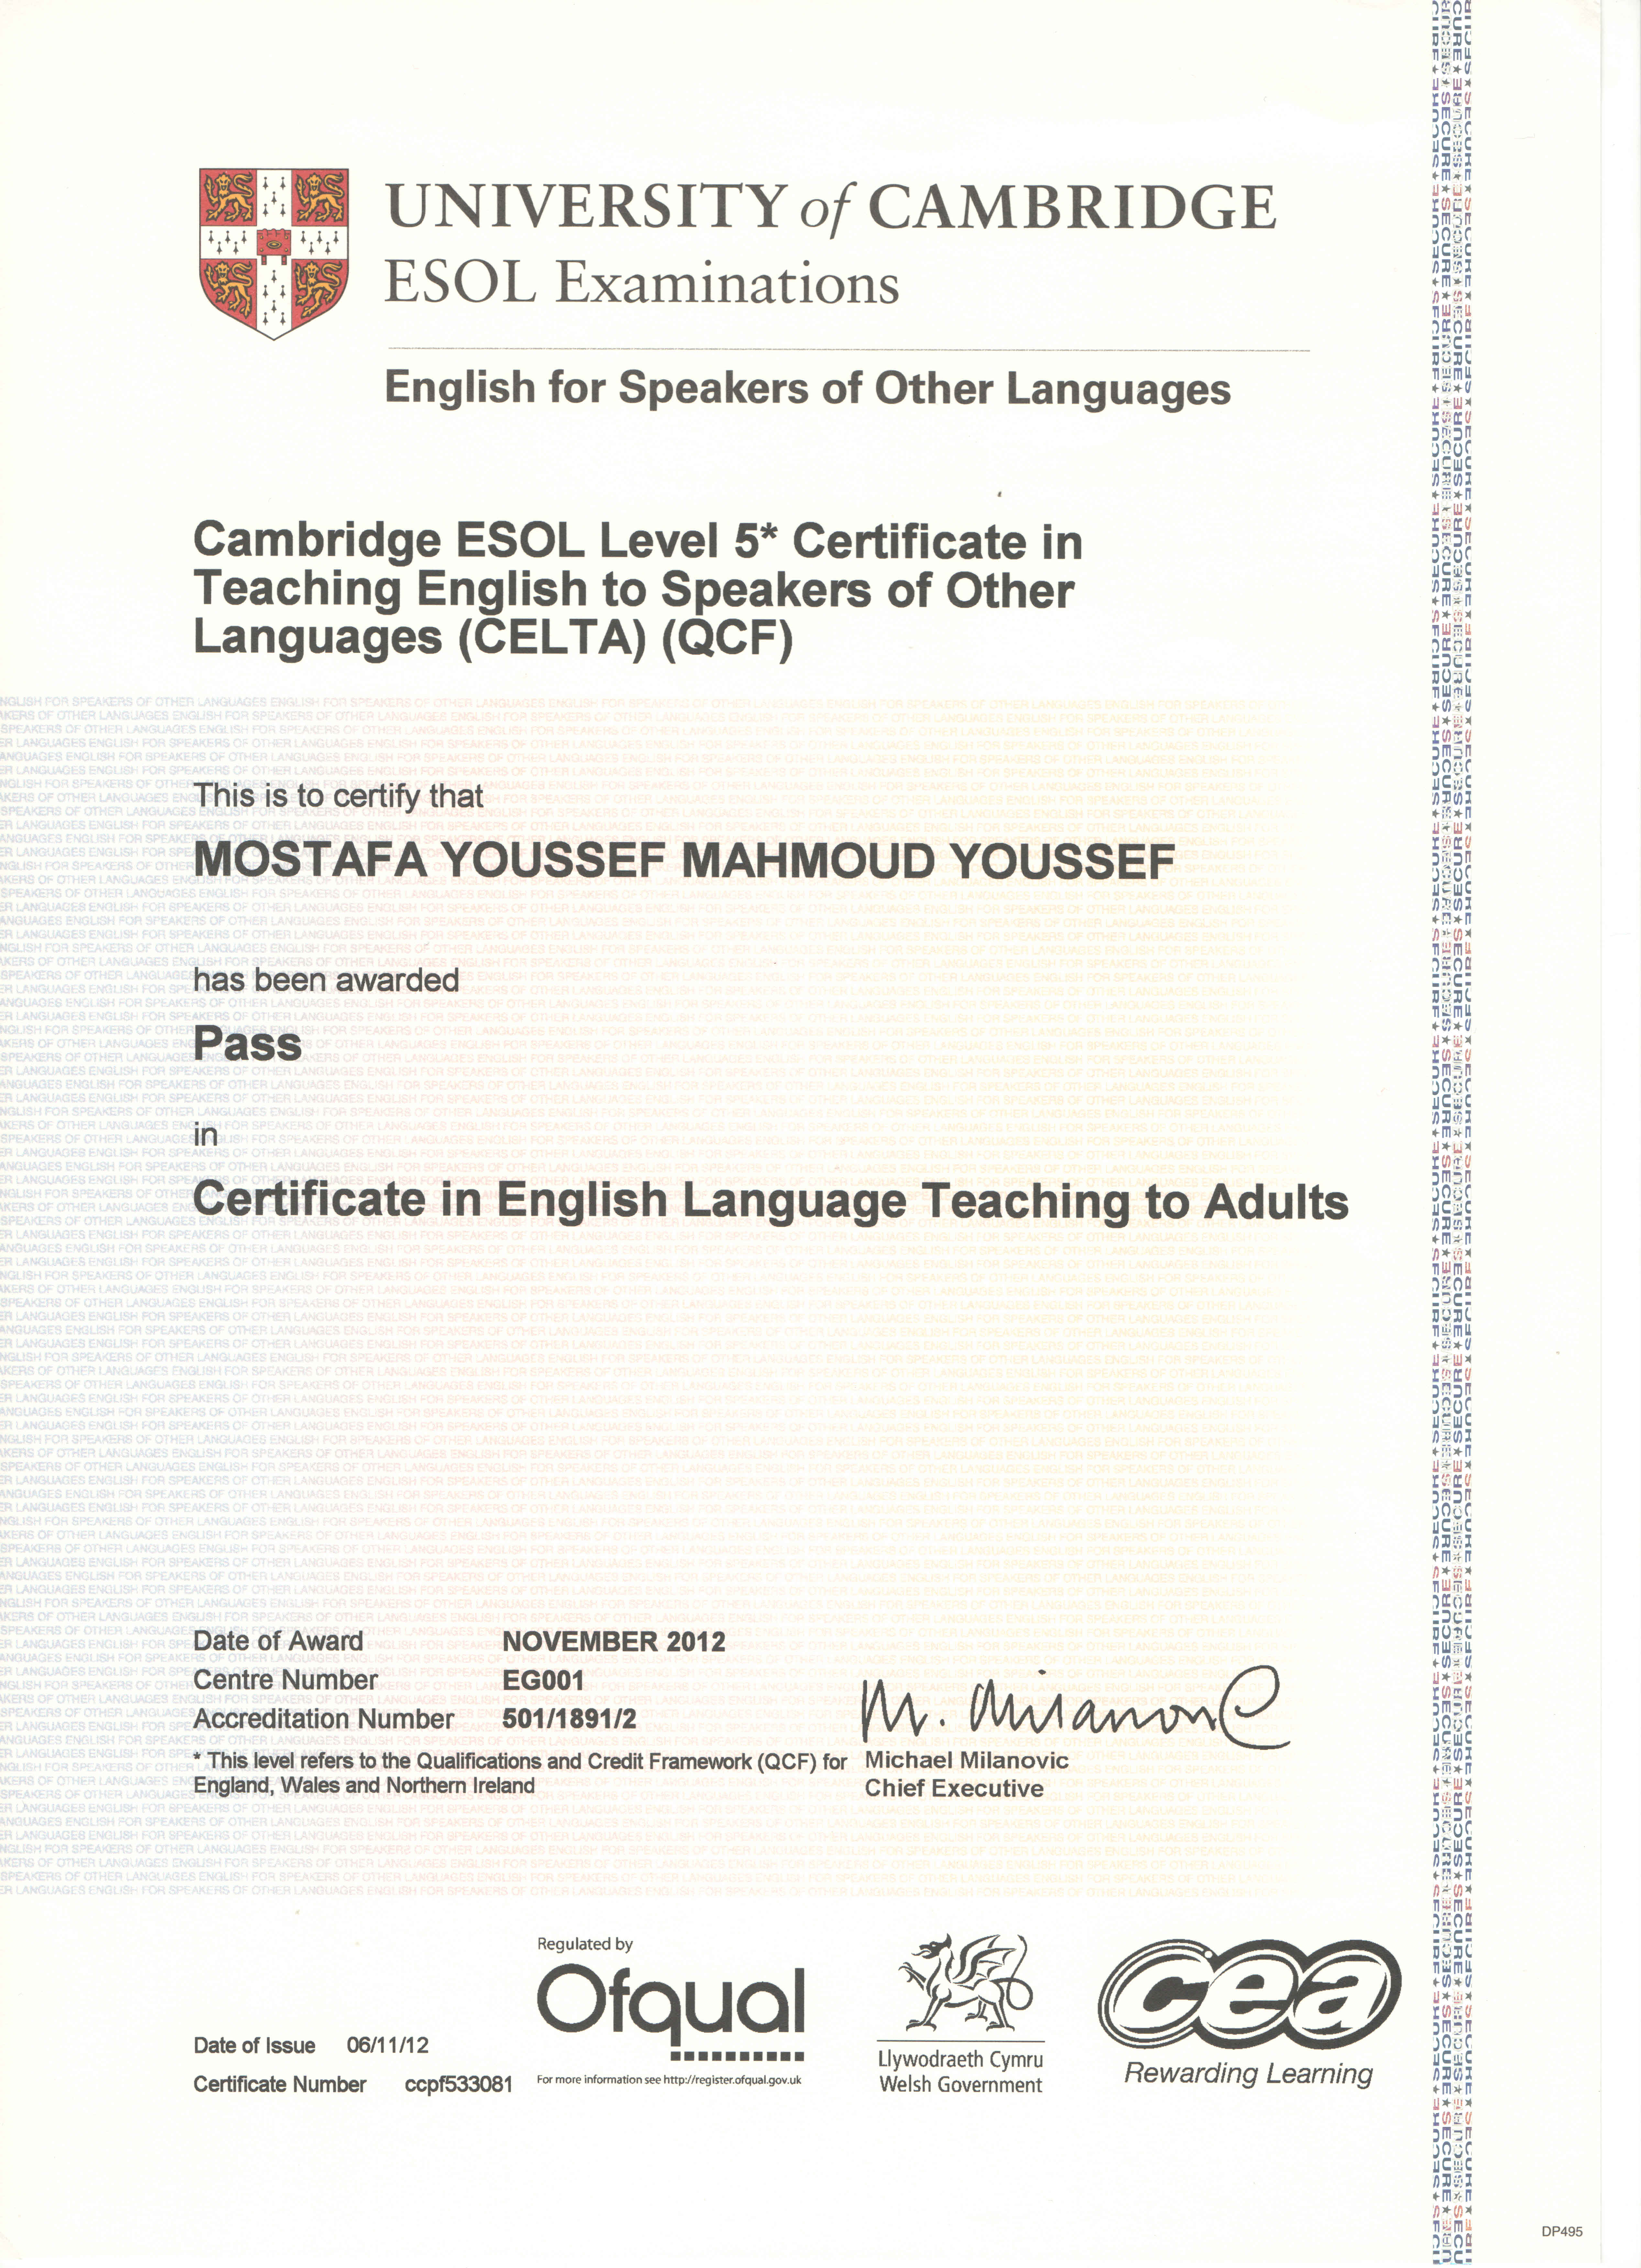 Celta wikipedia cambridge celta certificate 1betcityfo Image collections